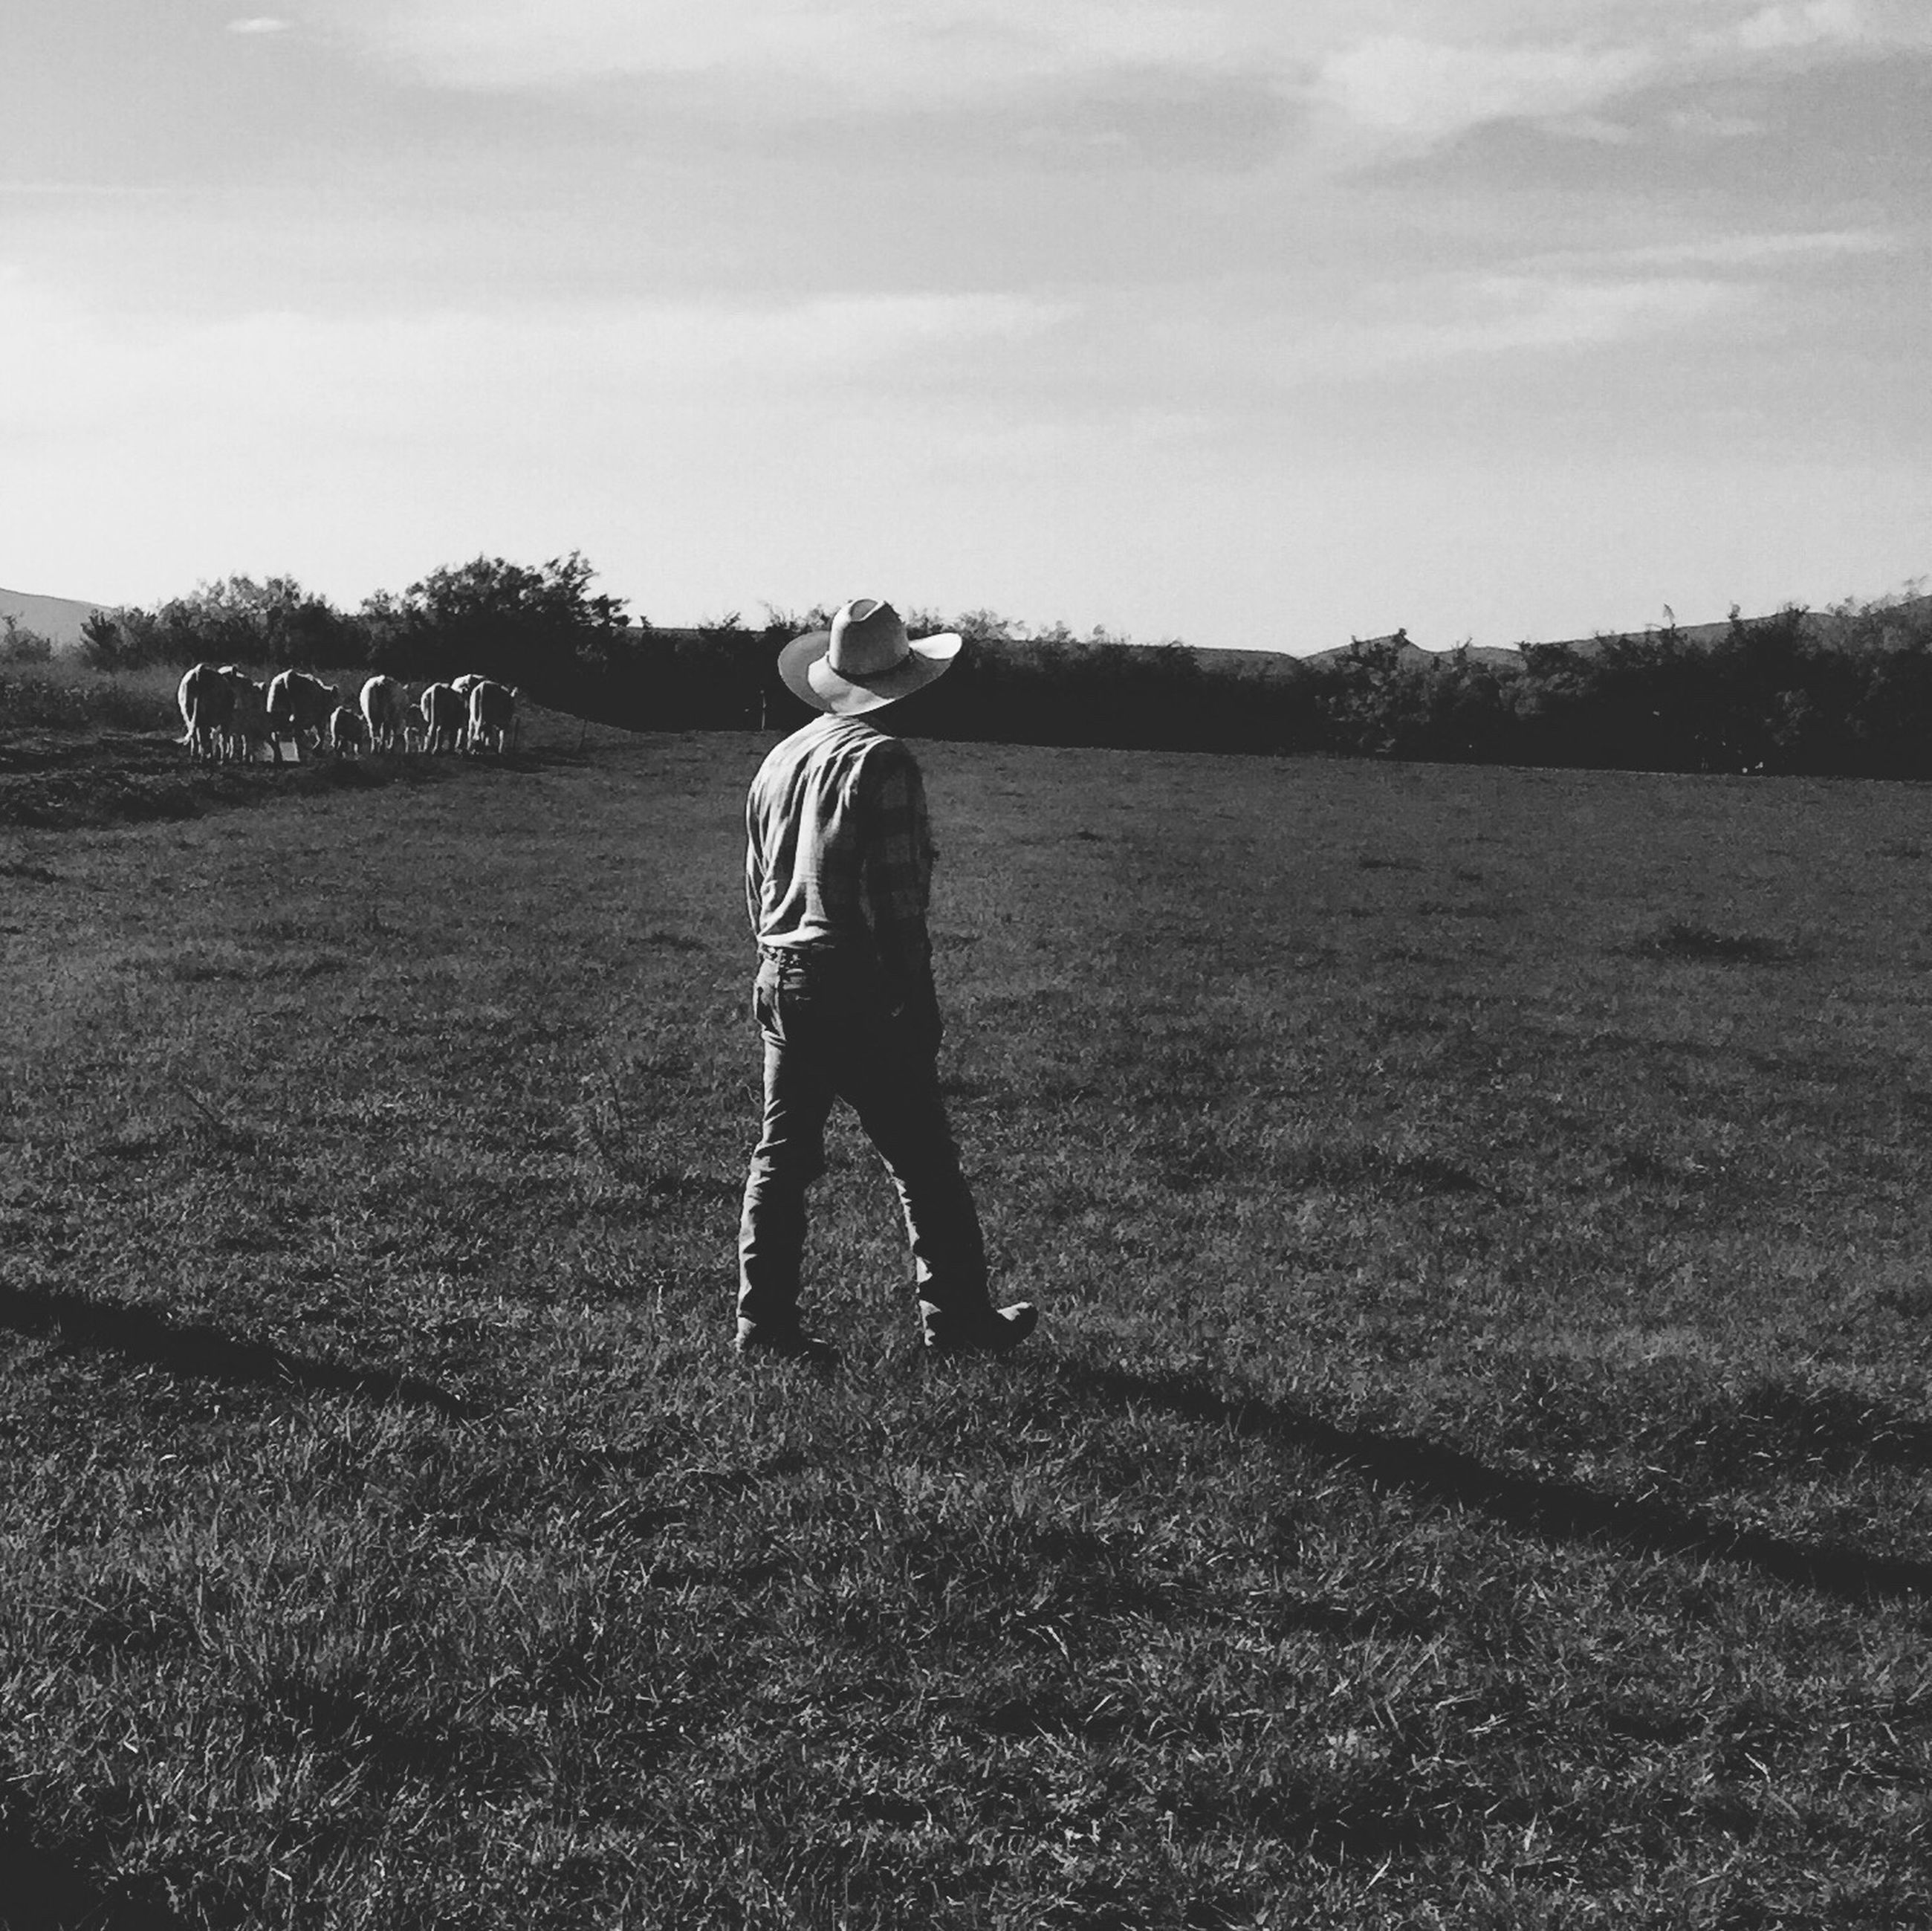 field, grass, sky, leisure activity, lifestyles, full length, landscape, grassy, casual clothing, childhood, tranquility, nature, standing, tranquil scene, cloud - sky, rear view, boys, day